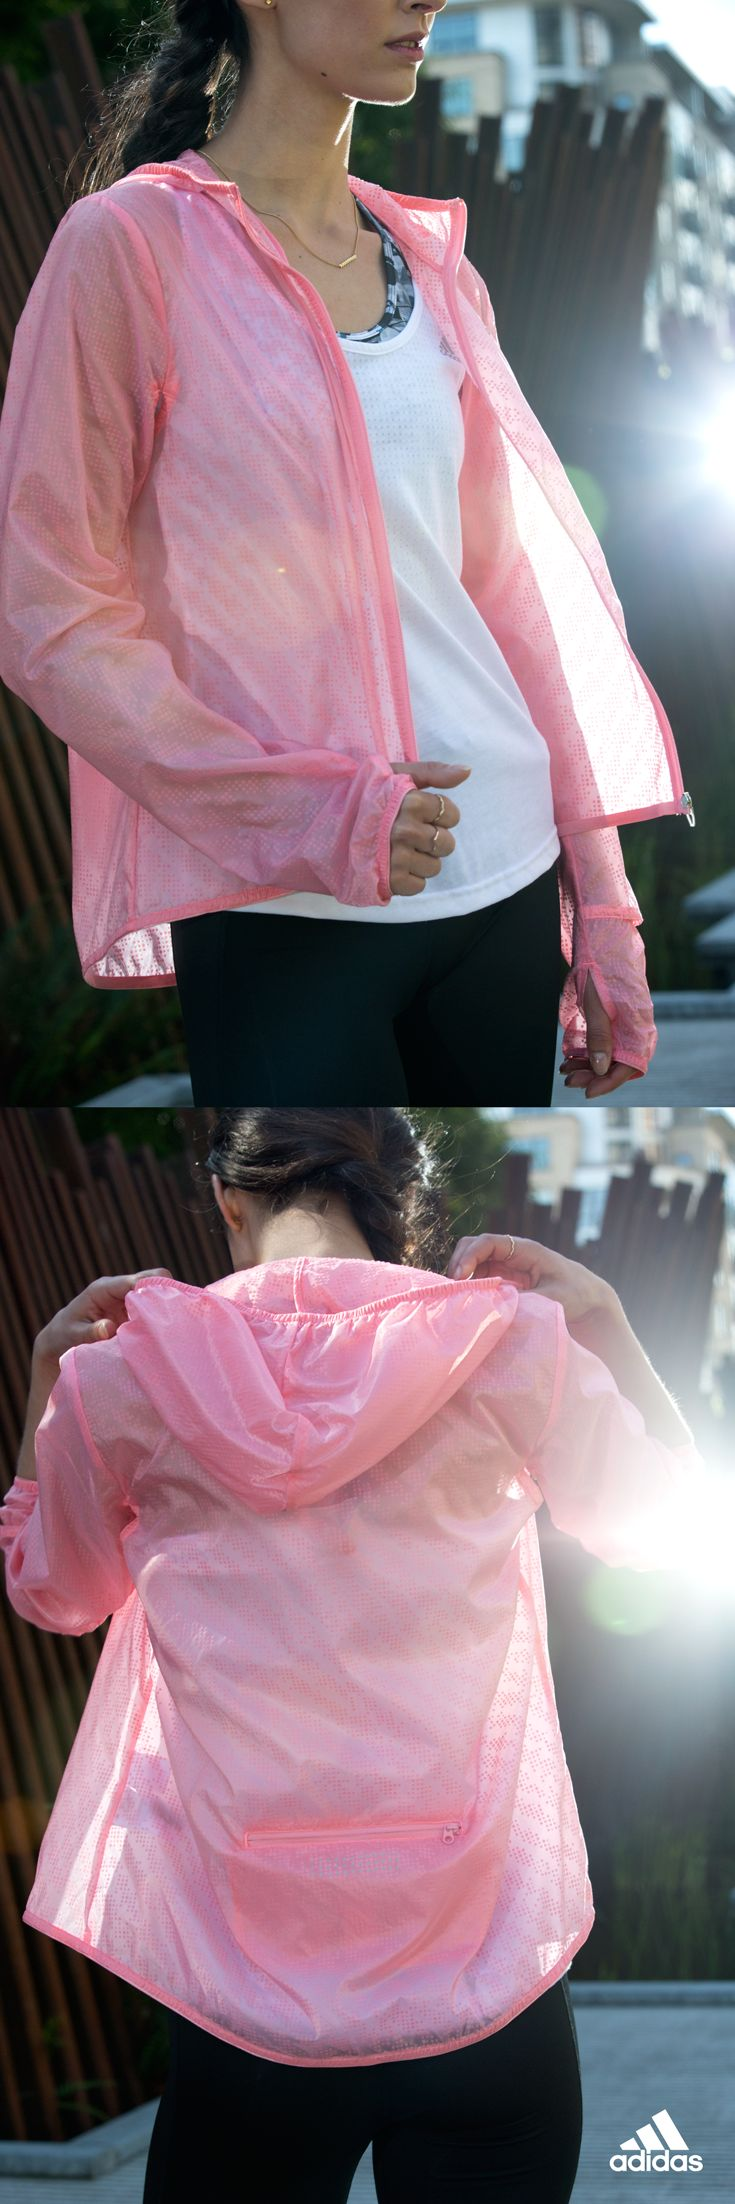 Fickle weather calls for breathable transitional pieces like the Supernova Run Transparent jacket. Climaproof material keeps rain off your back without trapping heat. Layer up and head out. Product only available in the USA.